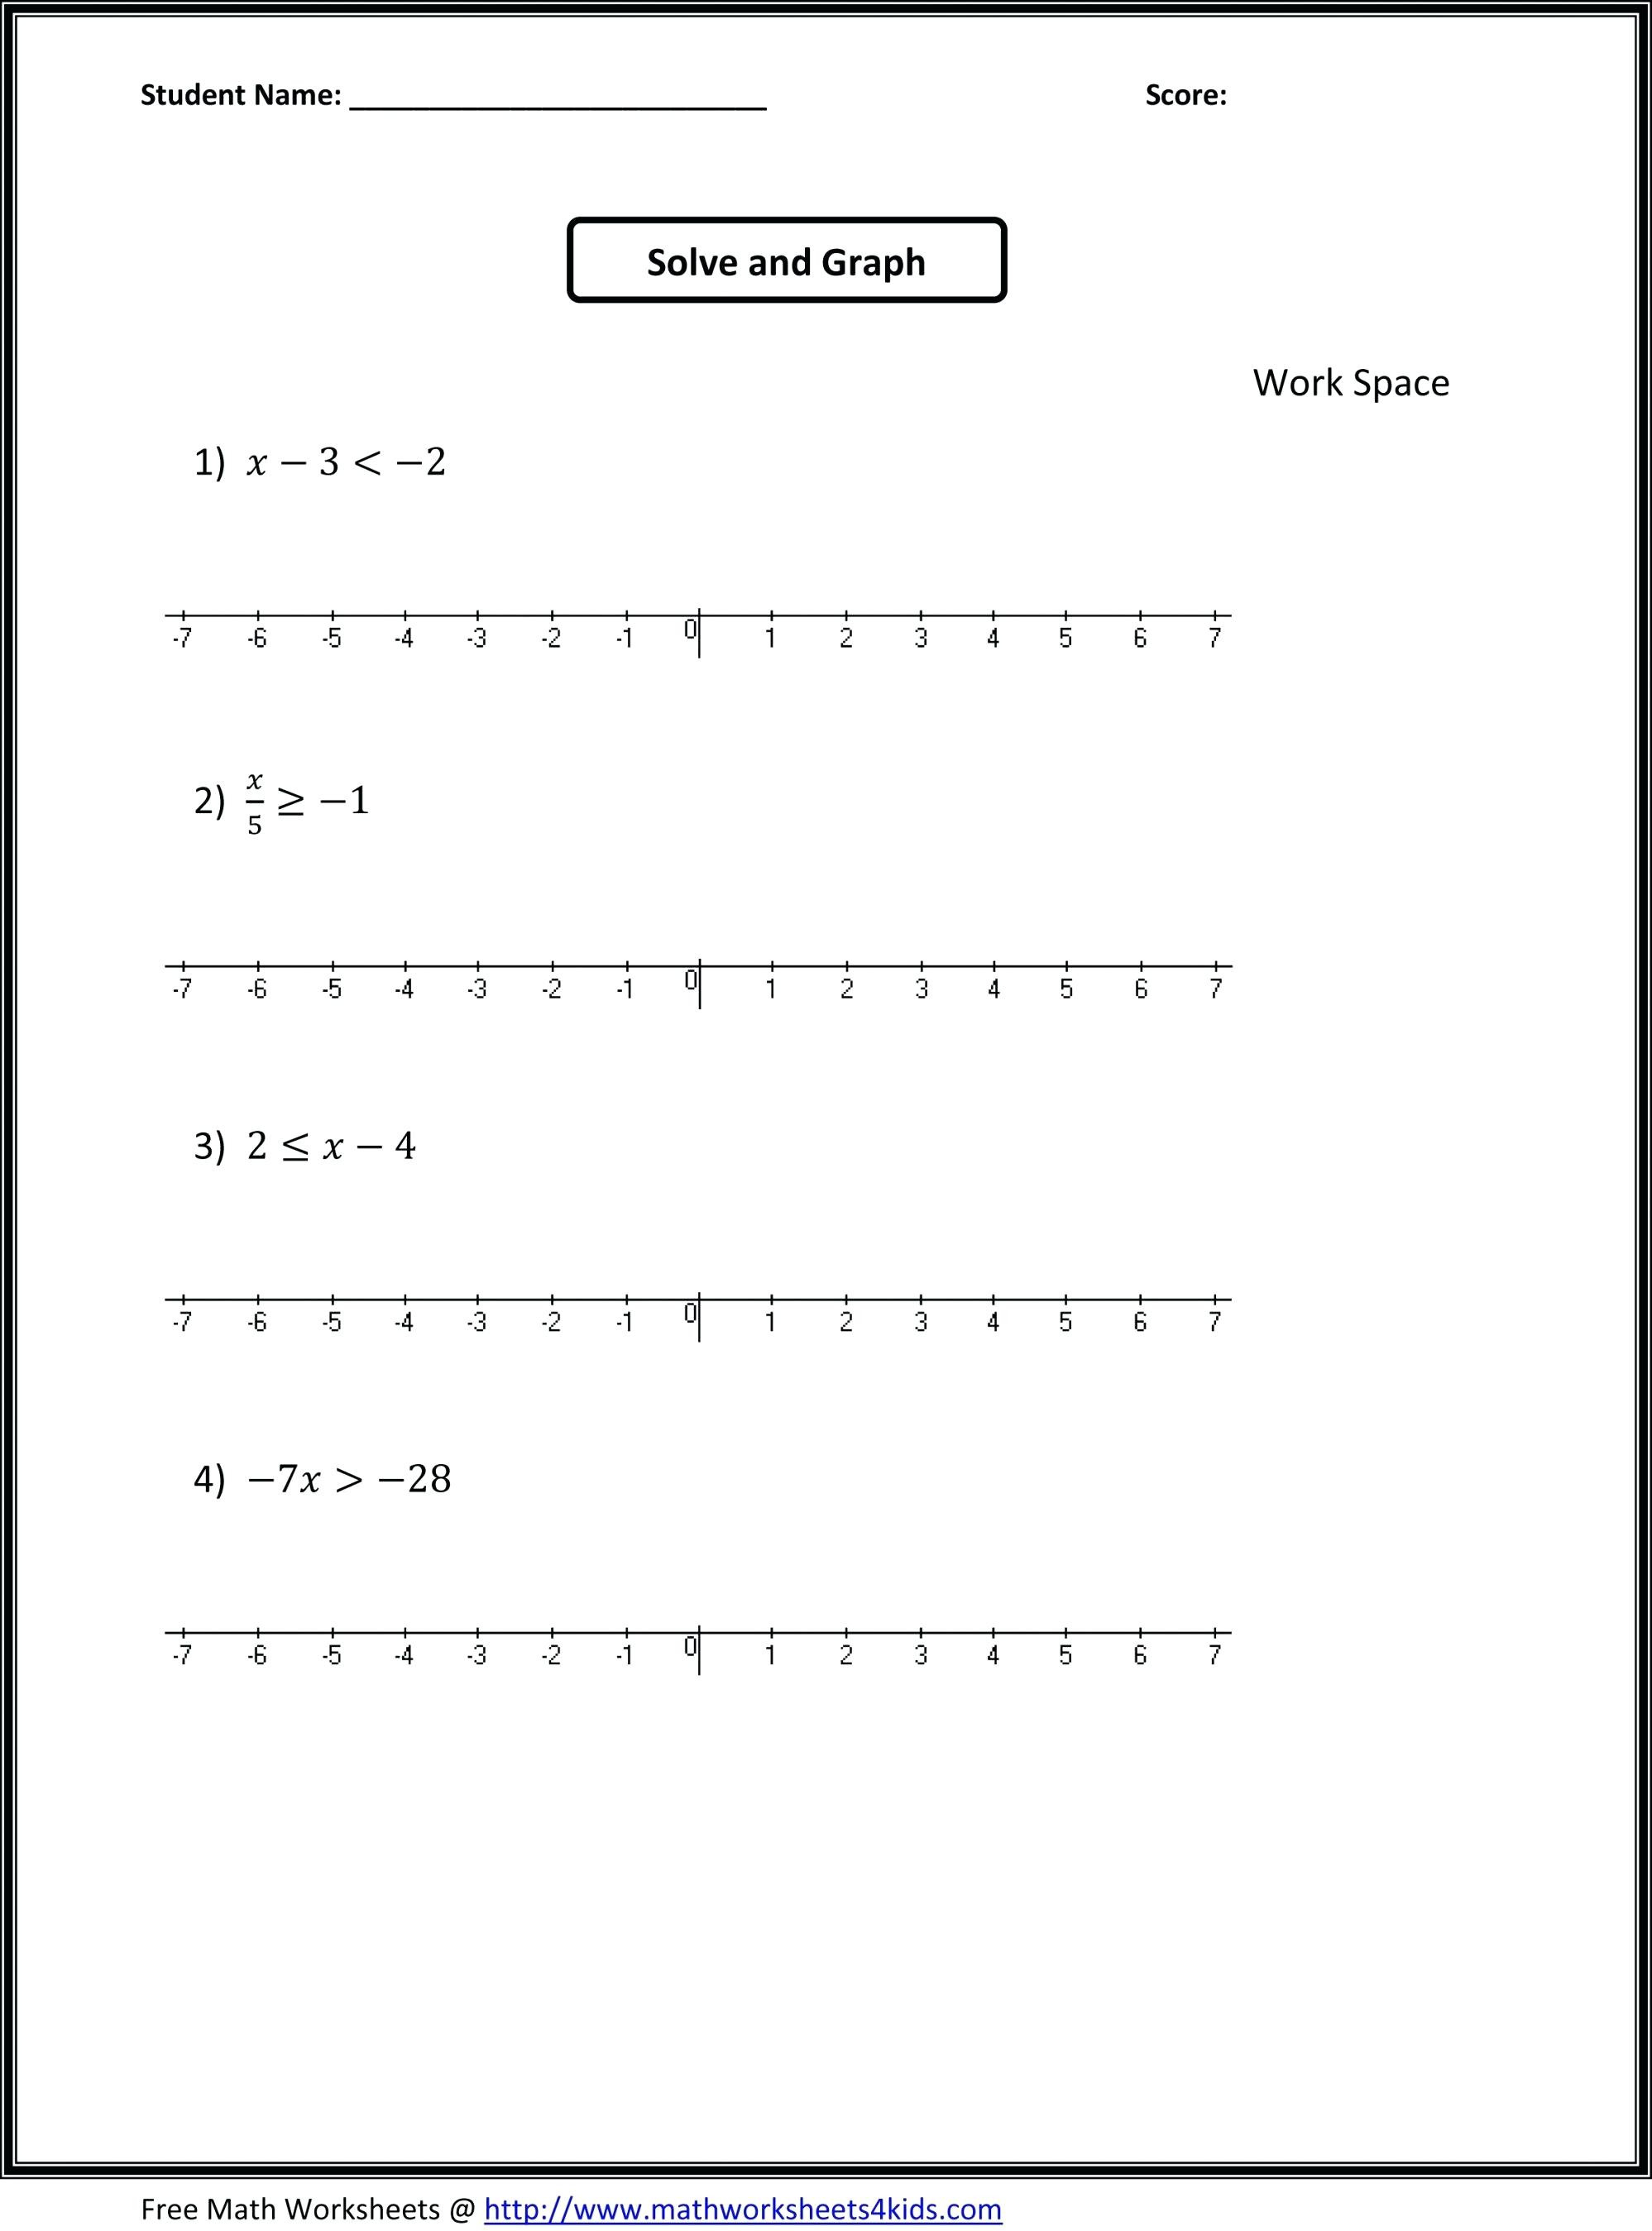 hight resolution of Inequalities Worksheets For 9th Grade Algebra   Printable Worksheets and  Activities for Teachers